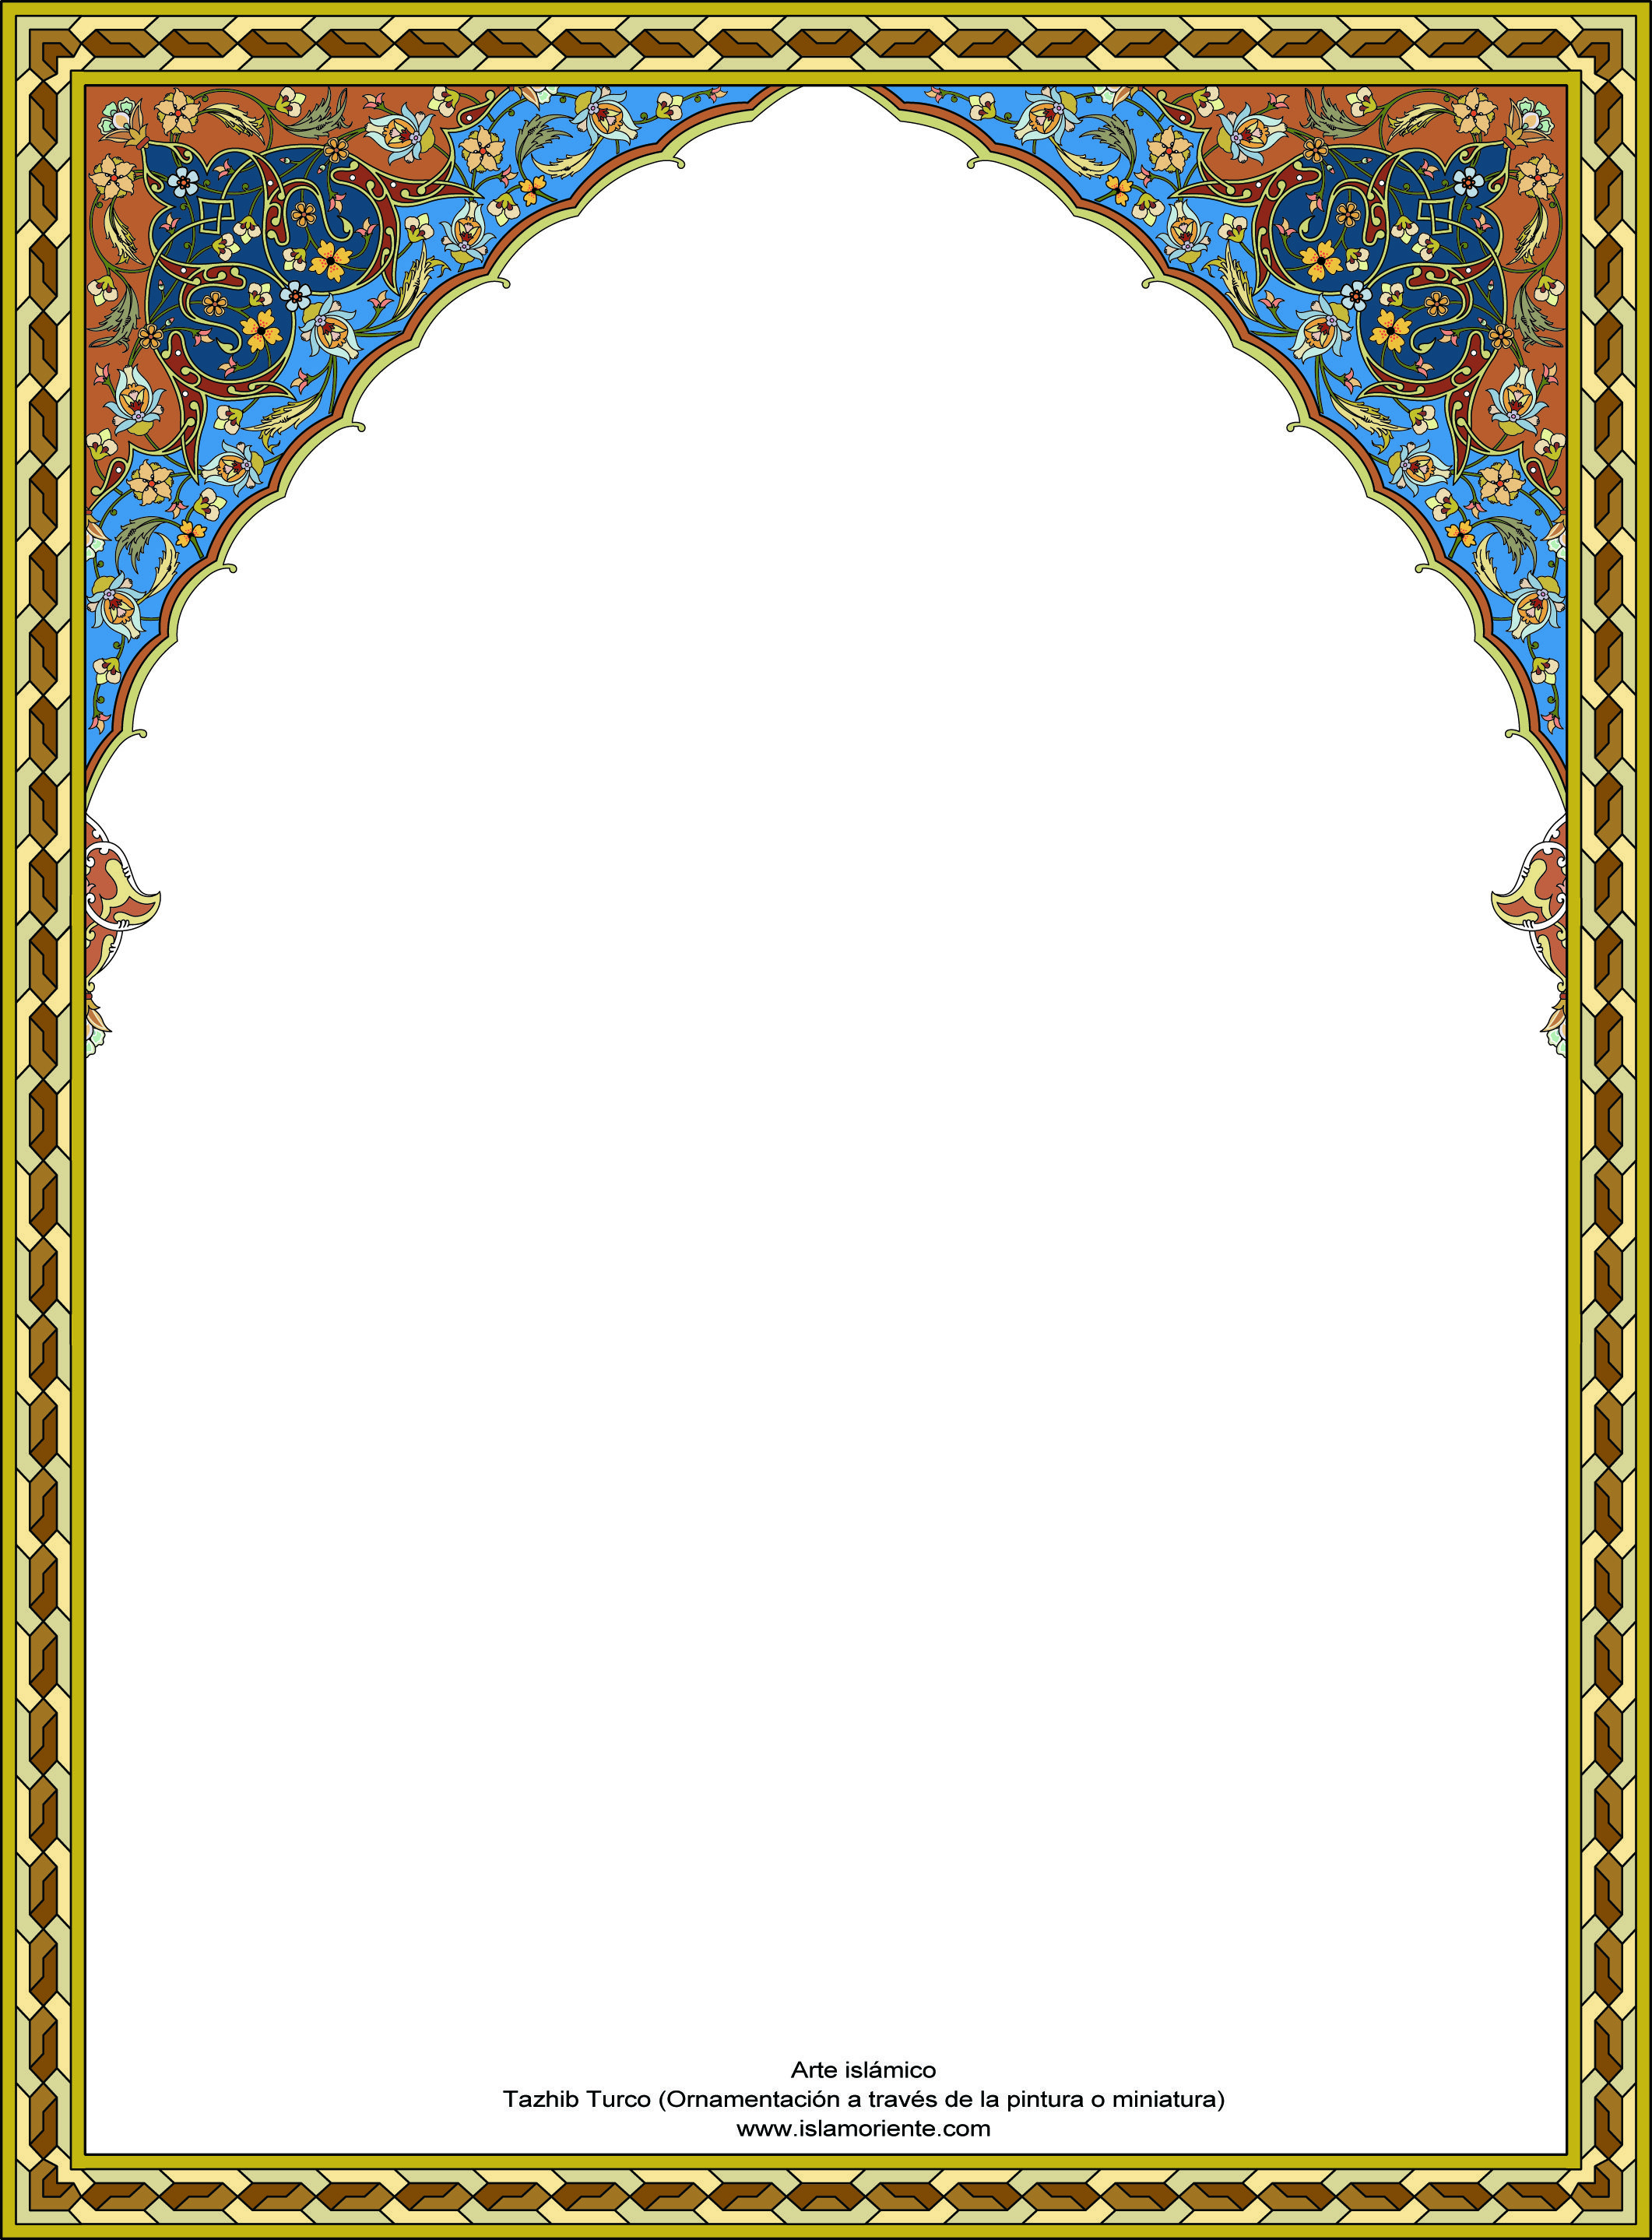 Islamic Art - Turkish Tazhib on a frame | Gallery of Islamic Art and ...